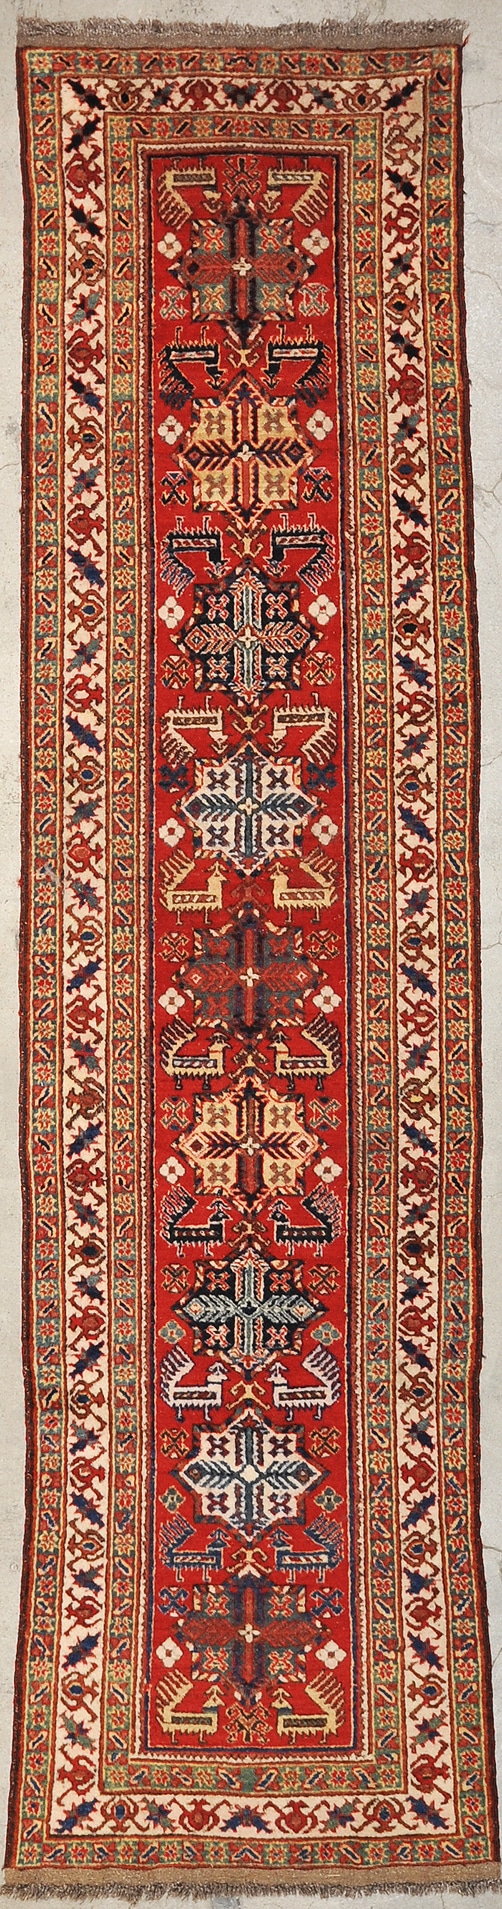 Fine Caucasian Design rugs and more oriental carpet 28614-1